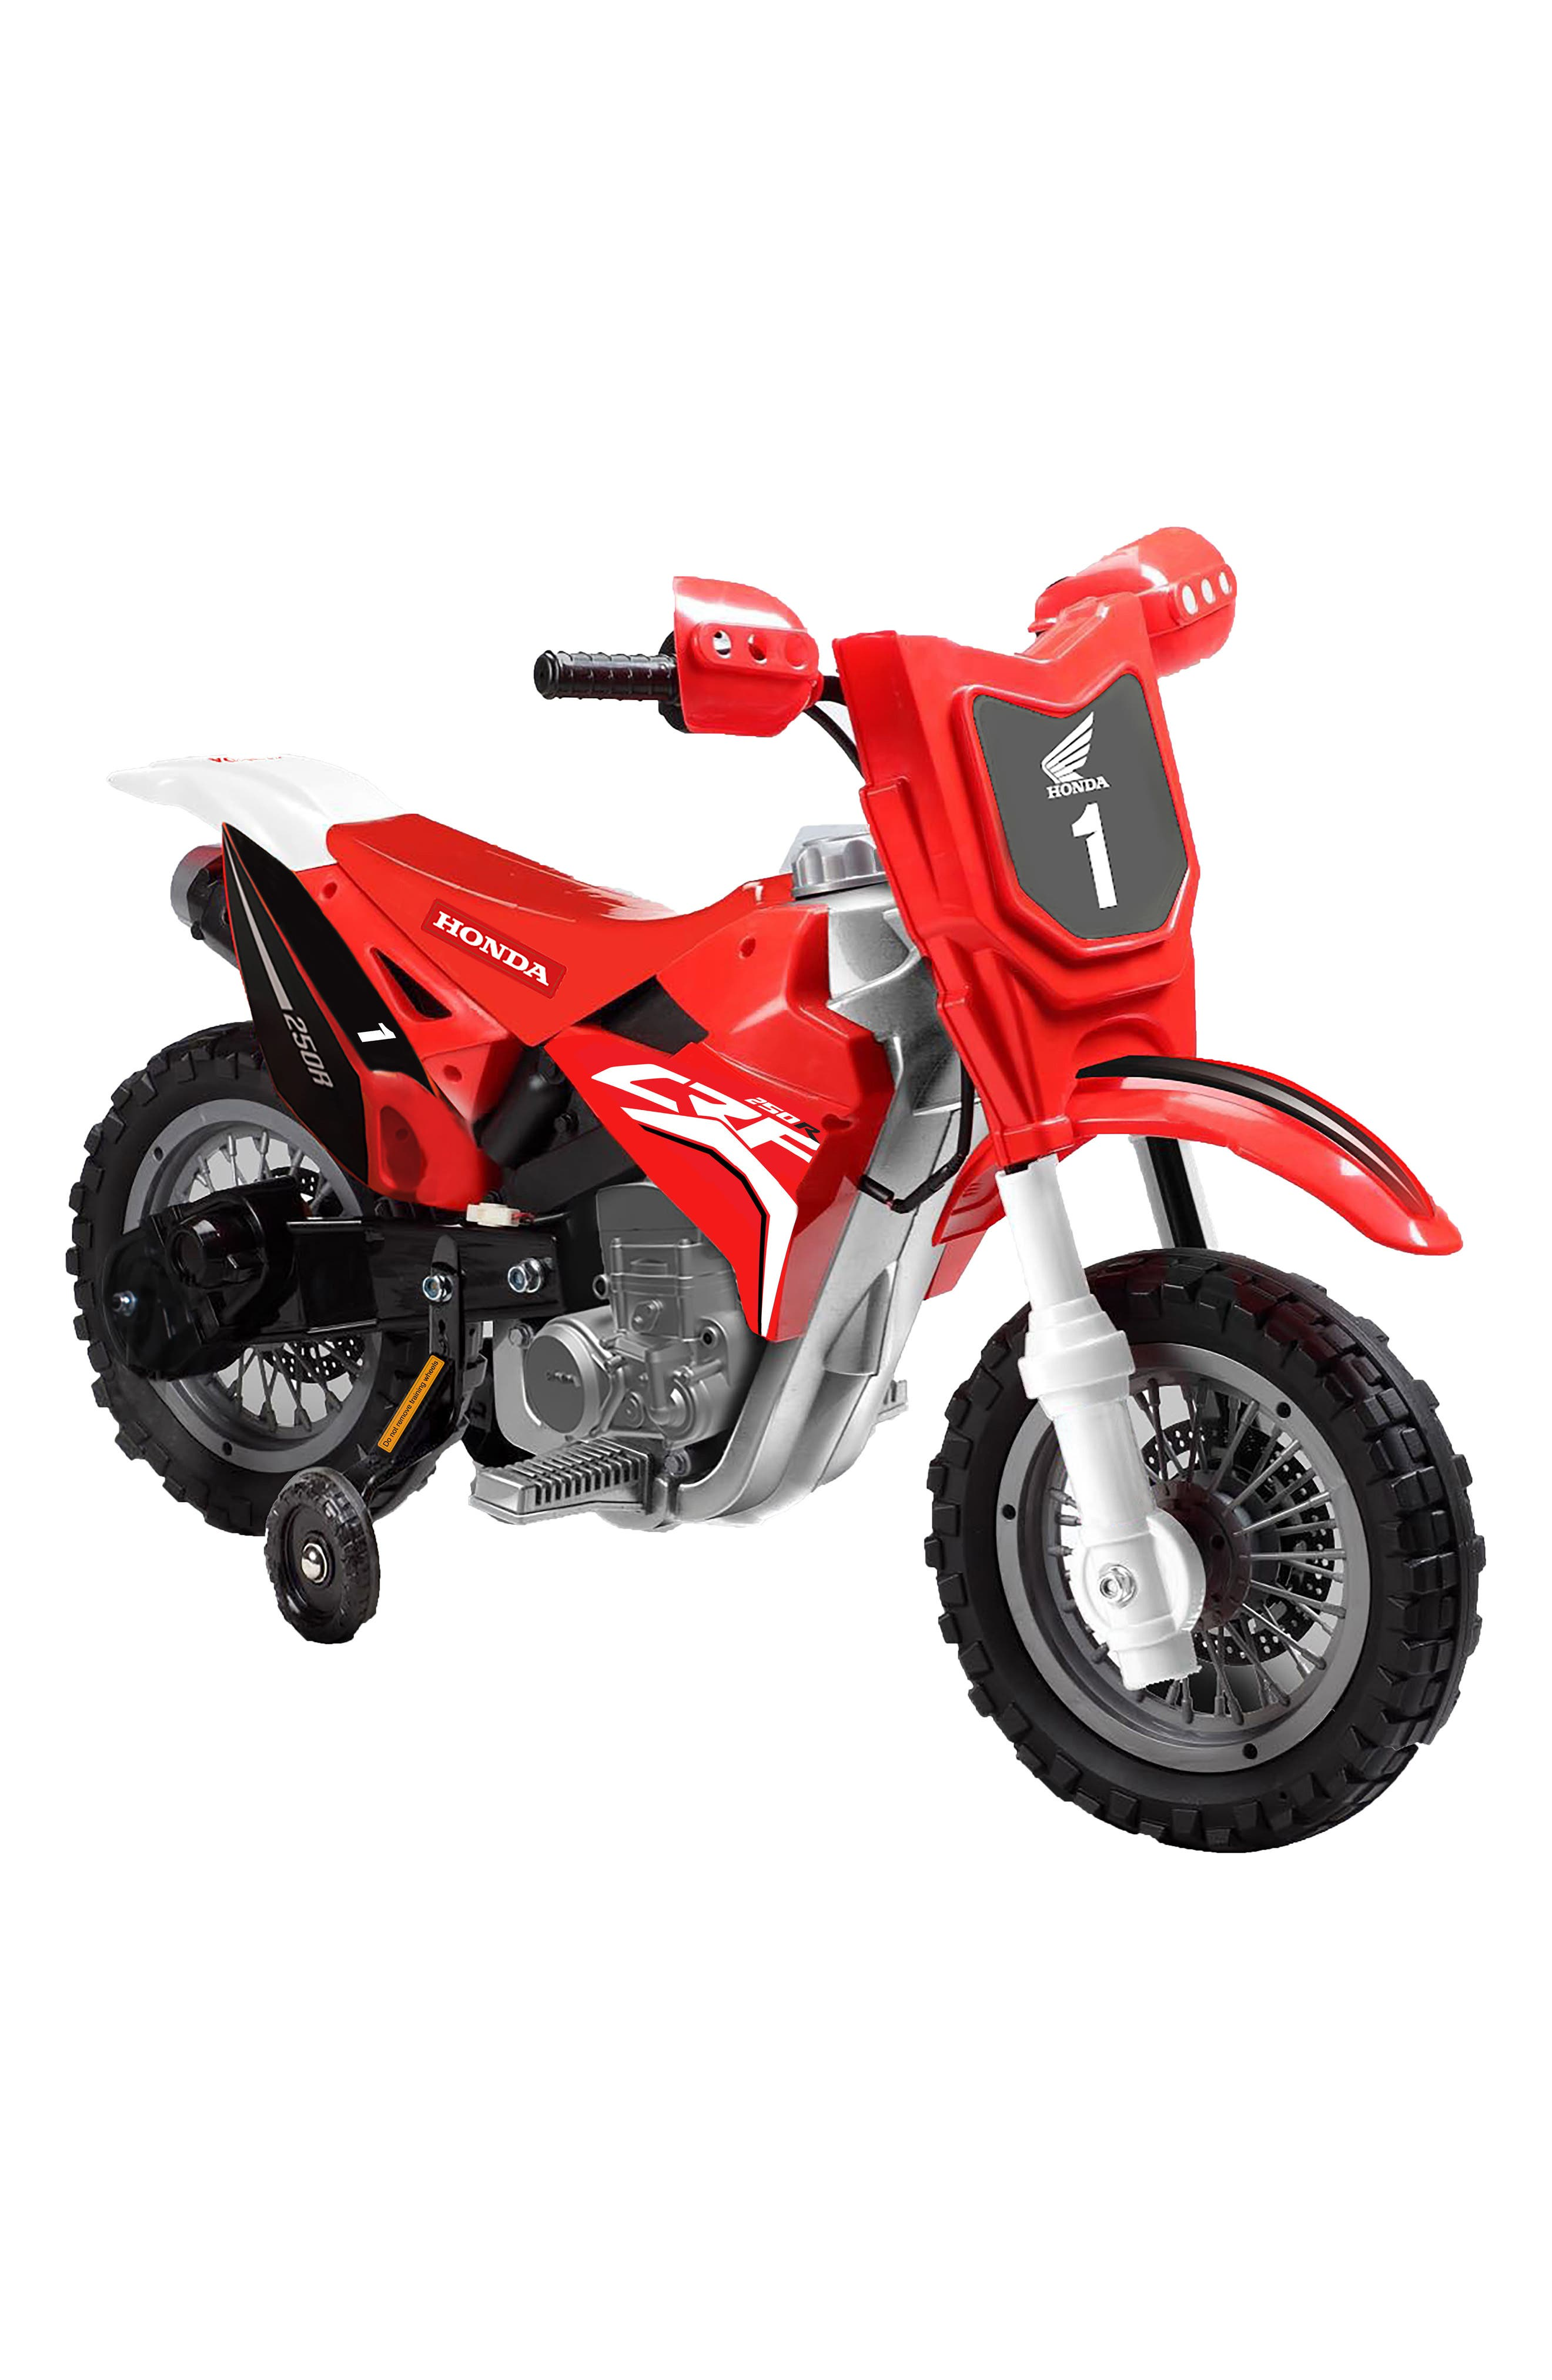 Honda Dirt Bike Ride-On Toy Motorcycle,                         Main,                         color, RED